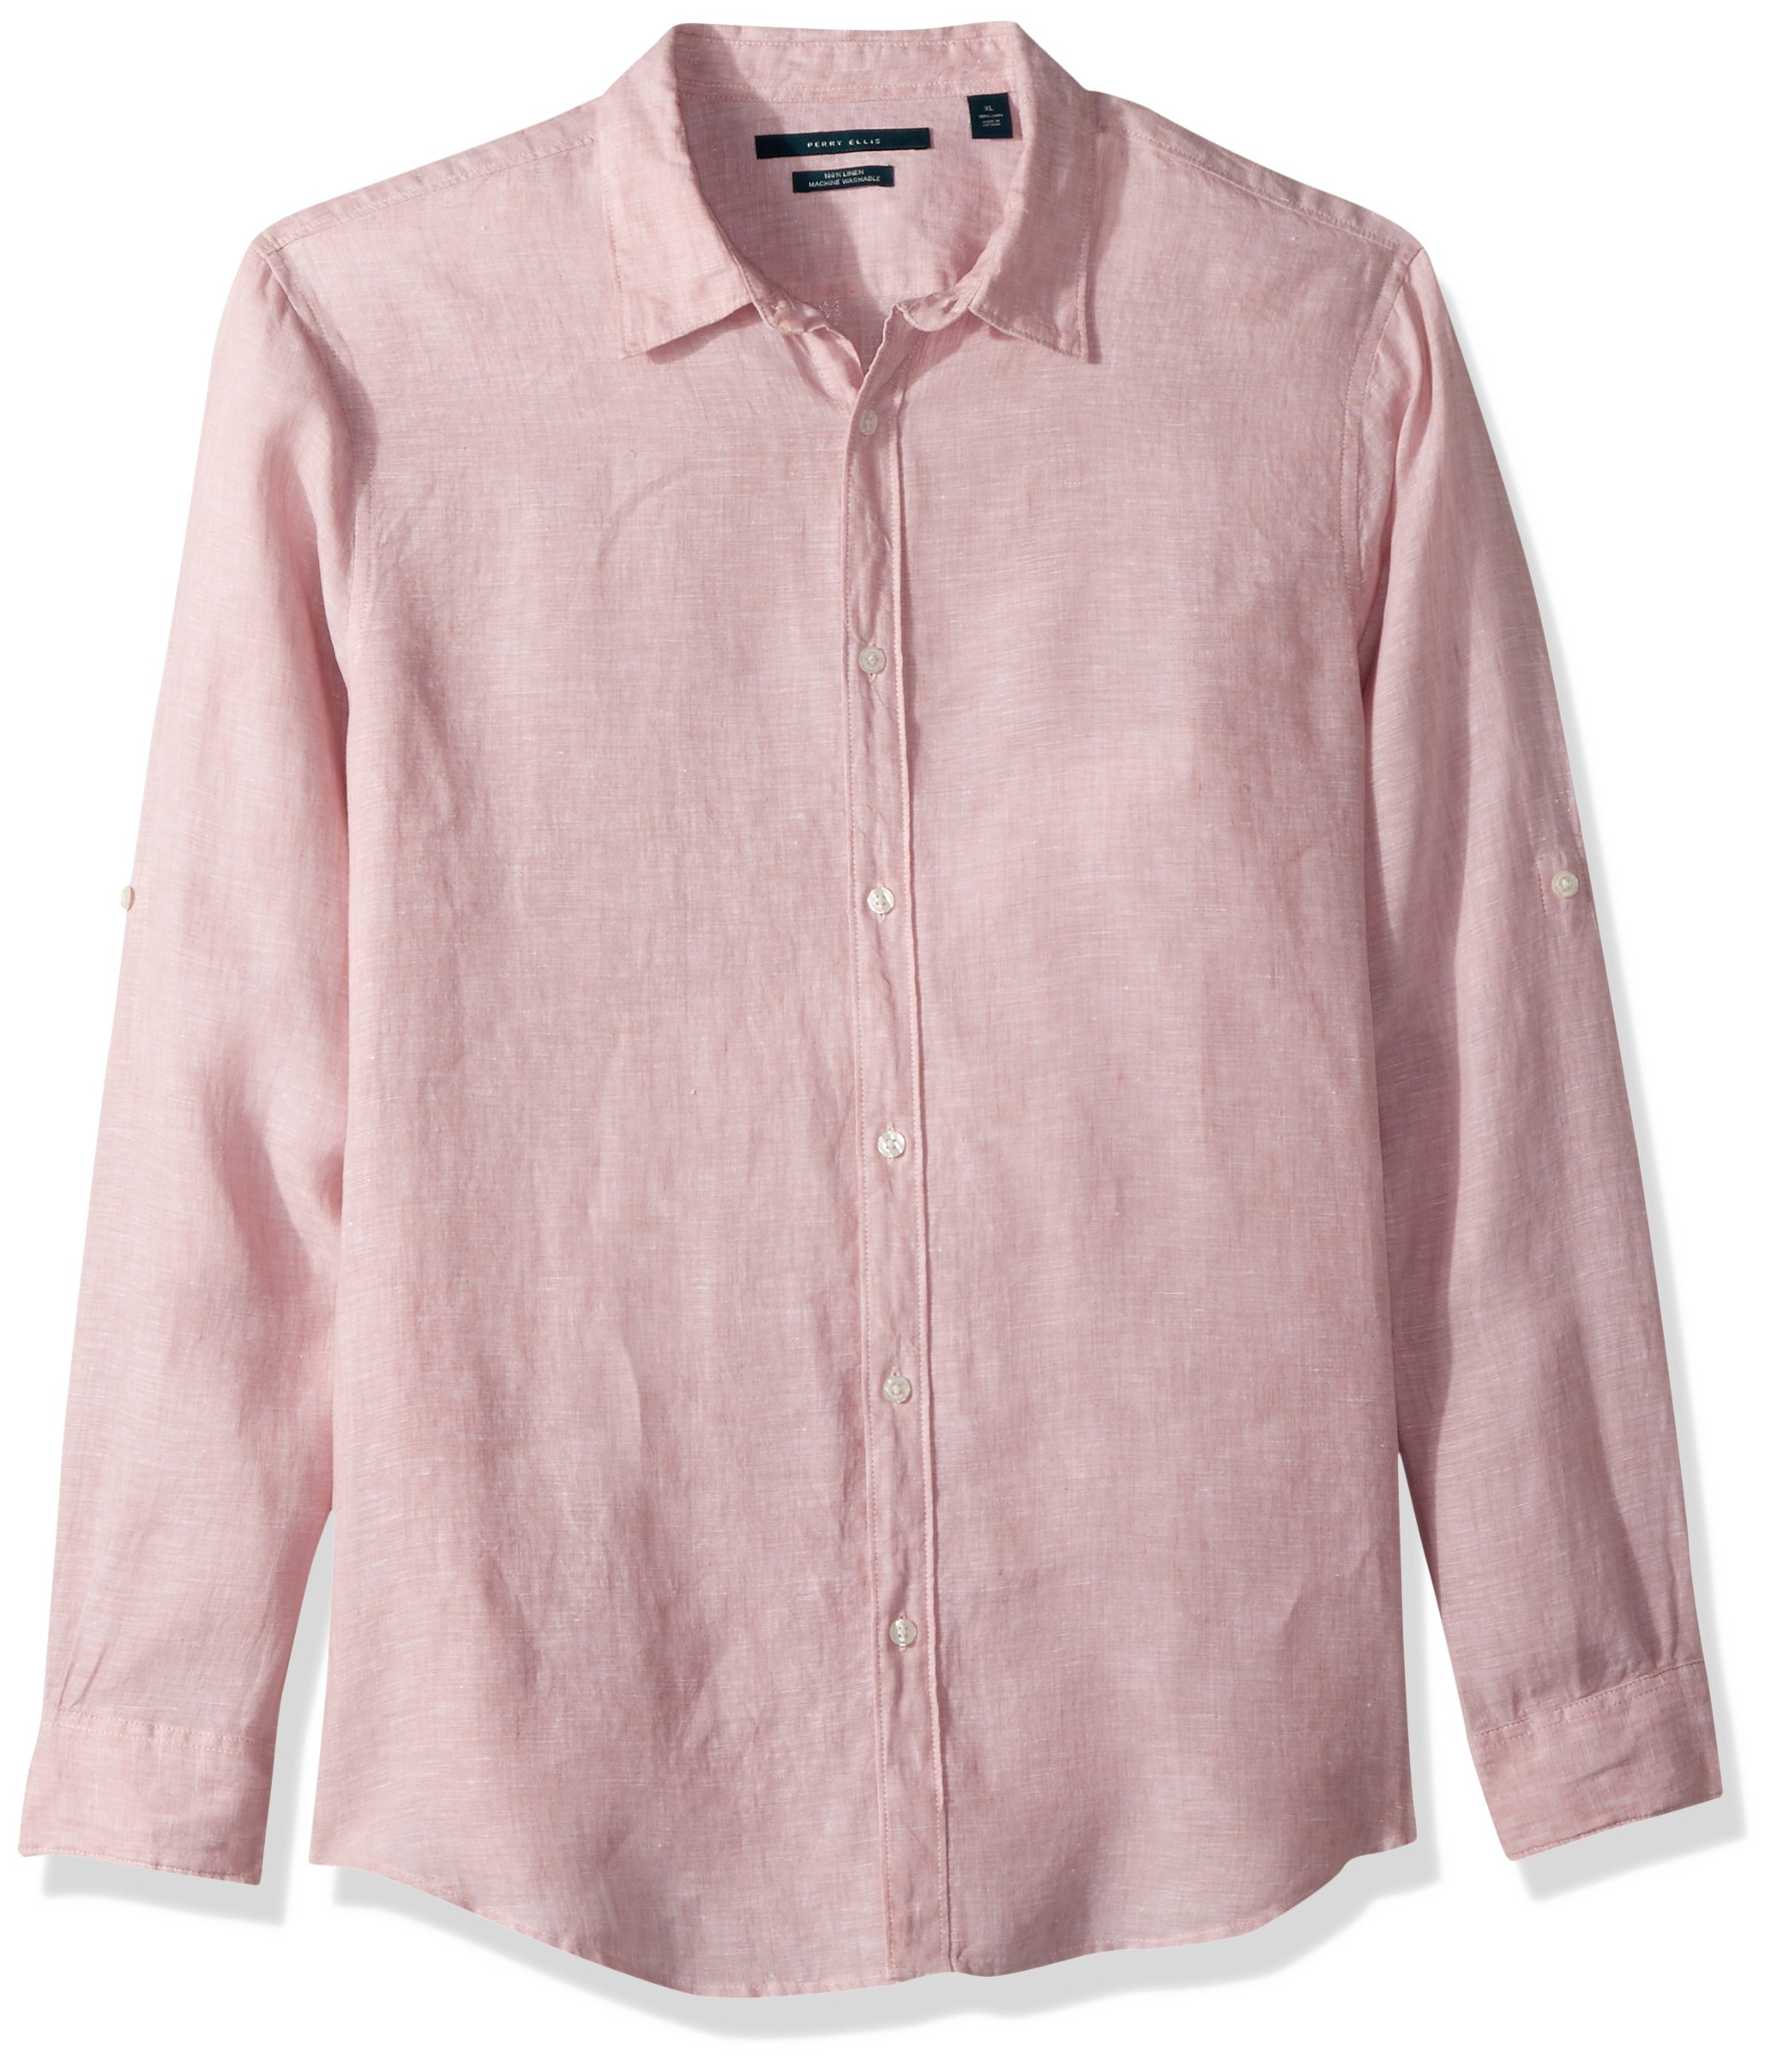 Perry Ellis Mens Rolled-Sleeve Solid Linen Cotton Button-up Shirt